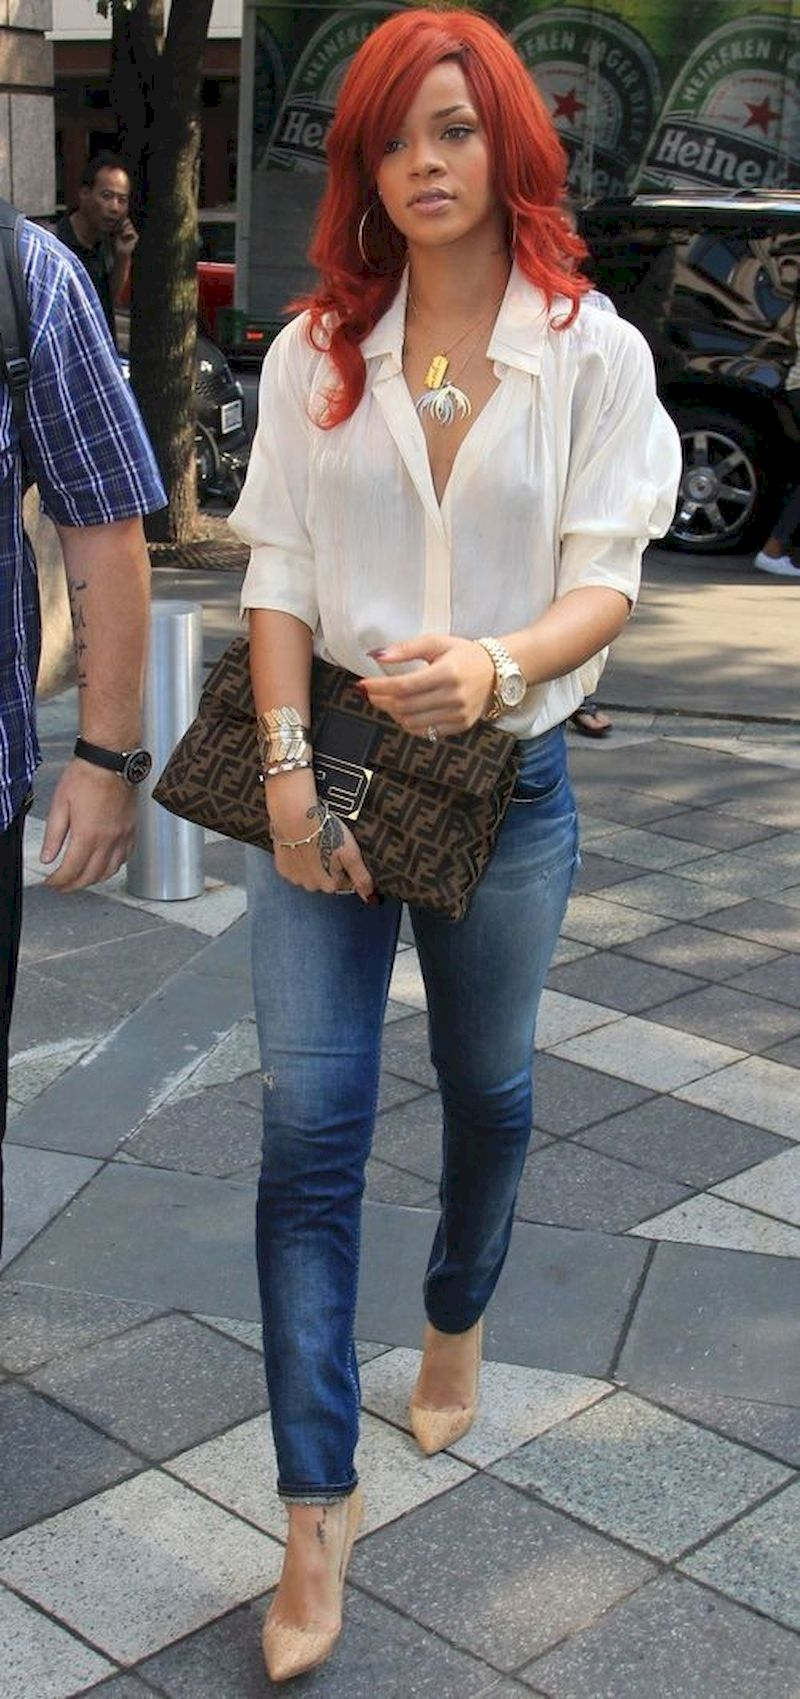 Casual clothes rihanna with white blouse, jeans, nude heels